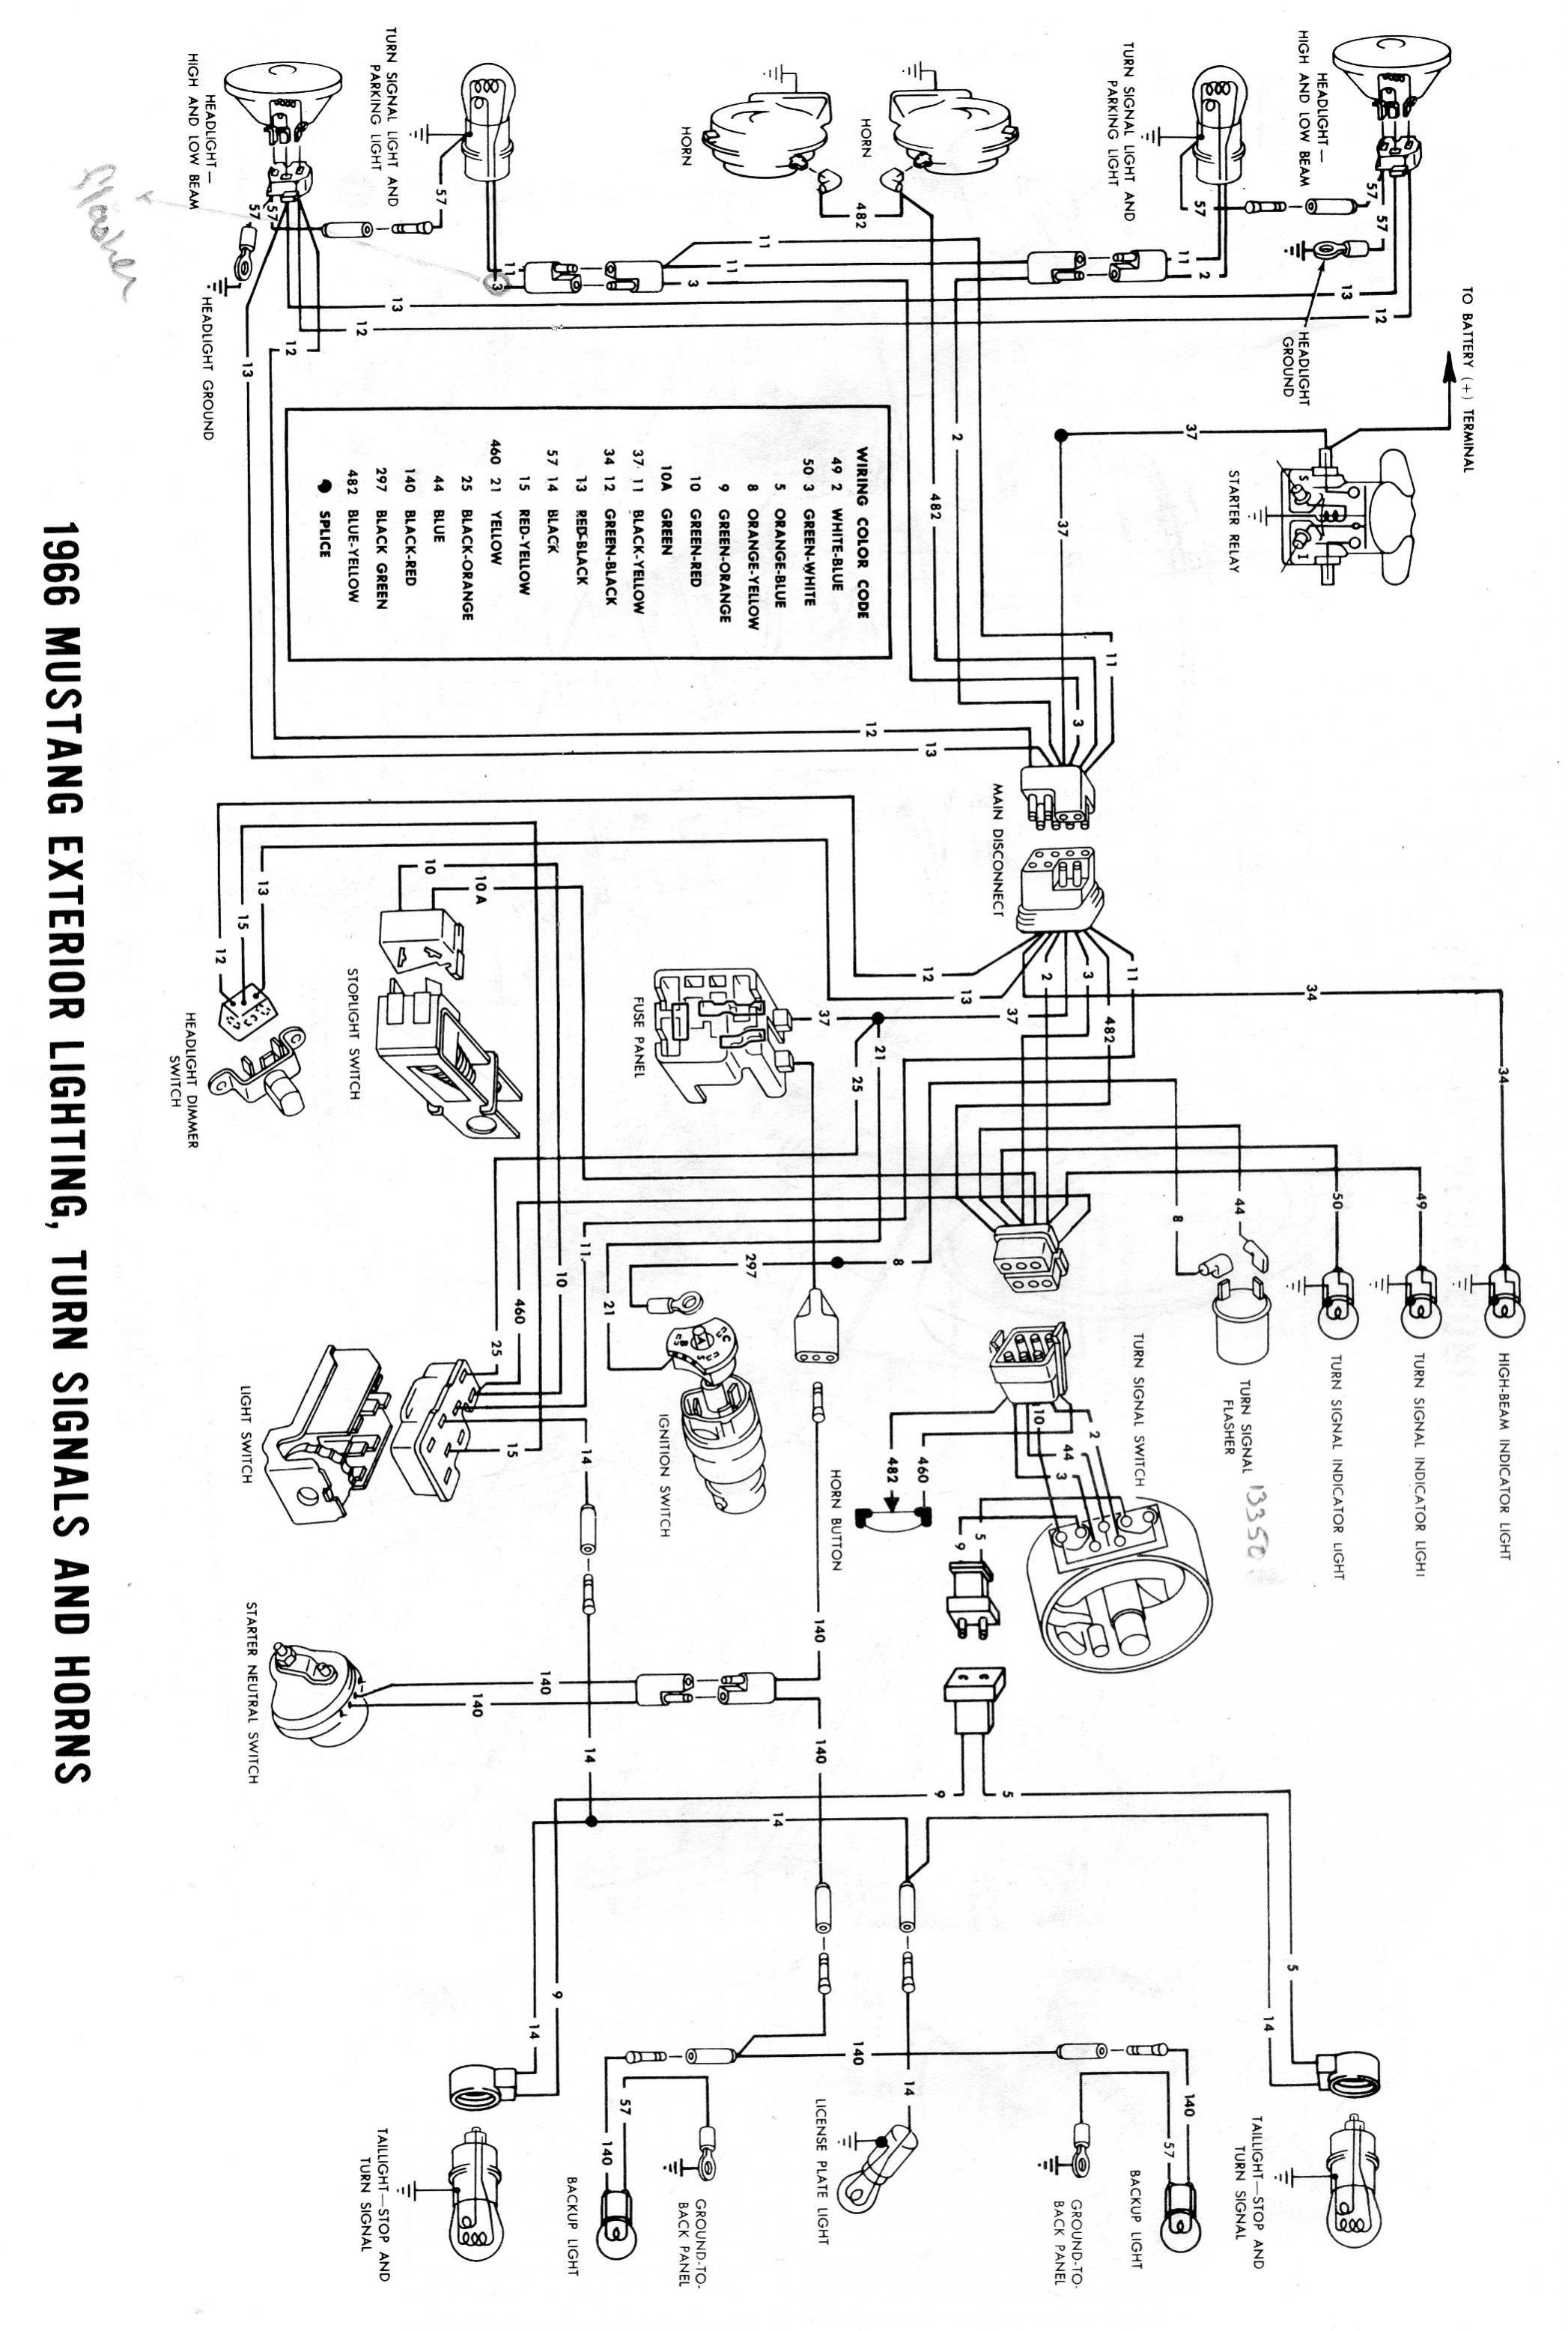 kc headlight wiring diagram 1966 mustang emergency flashers come on with turn  1966 mustang emergency flashers come on with turn